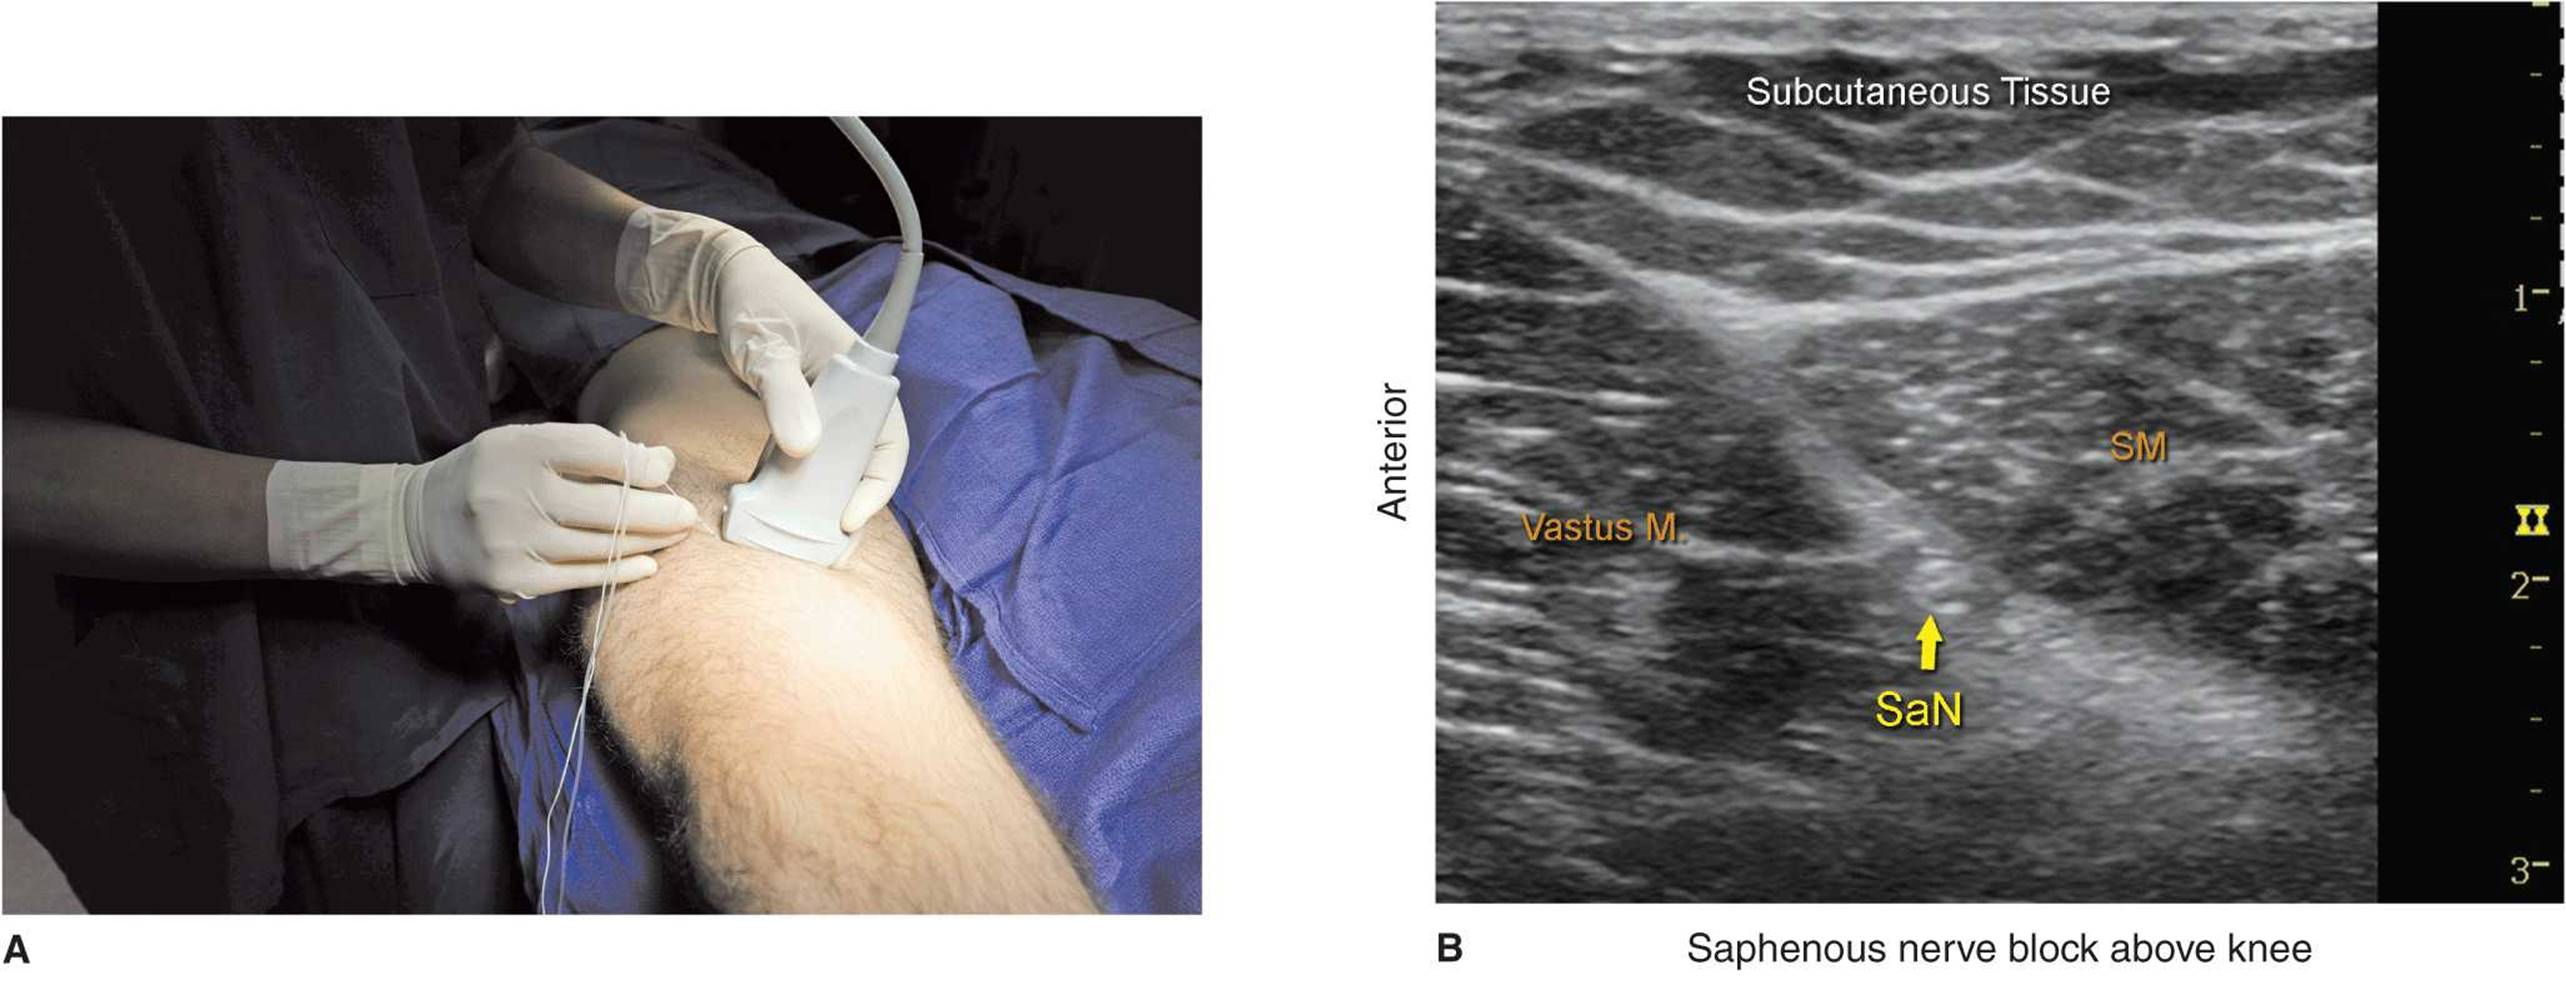 Ultrasound-Guided Saphenous Nerve Block - Hadzic\'s Peripheral Nerve ...